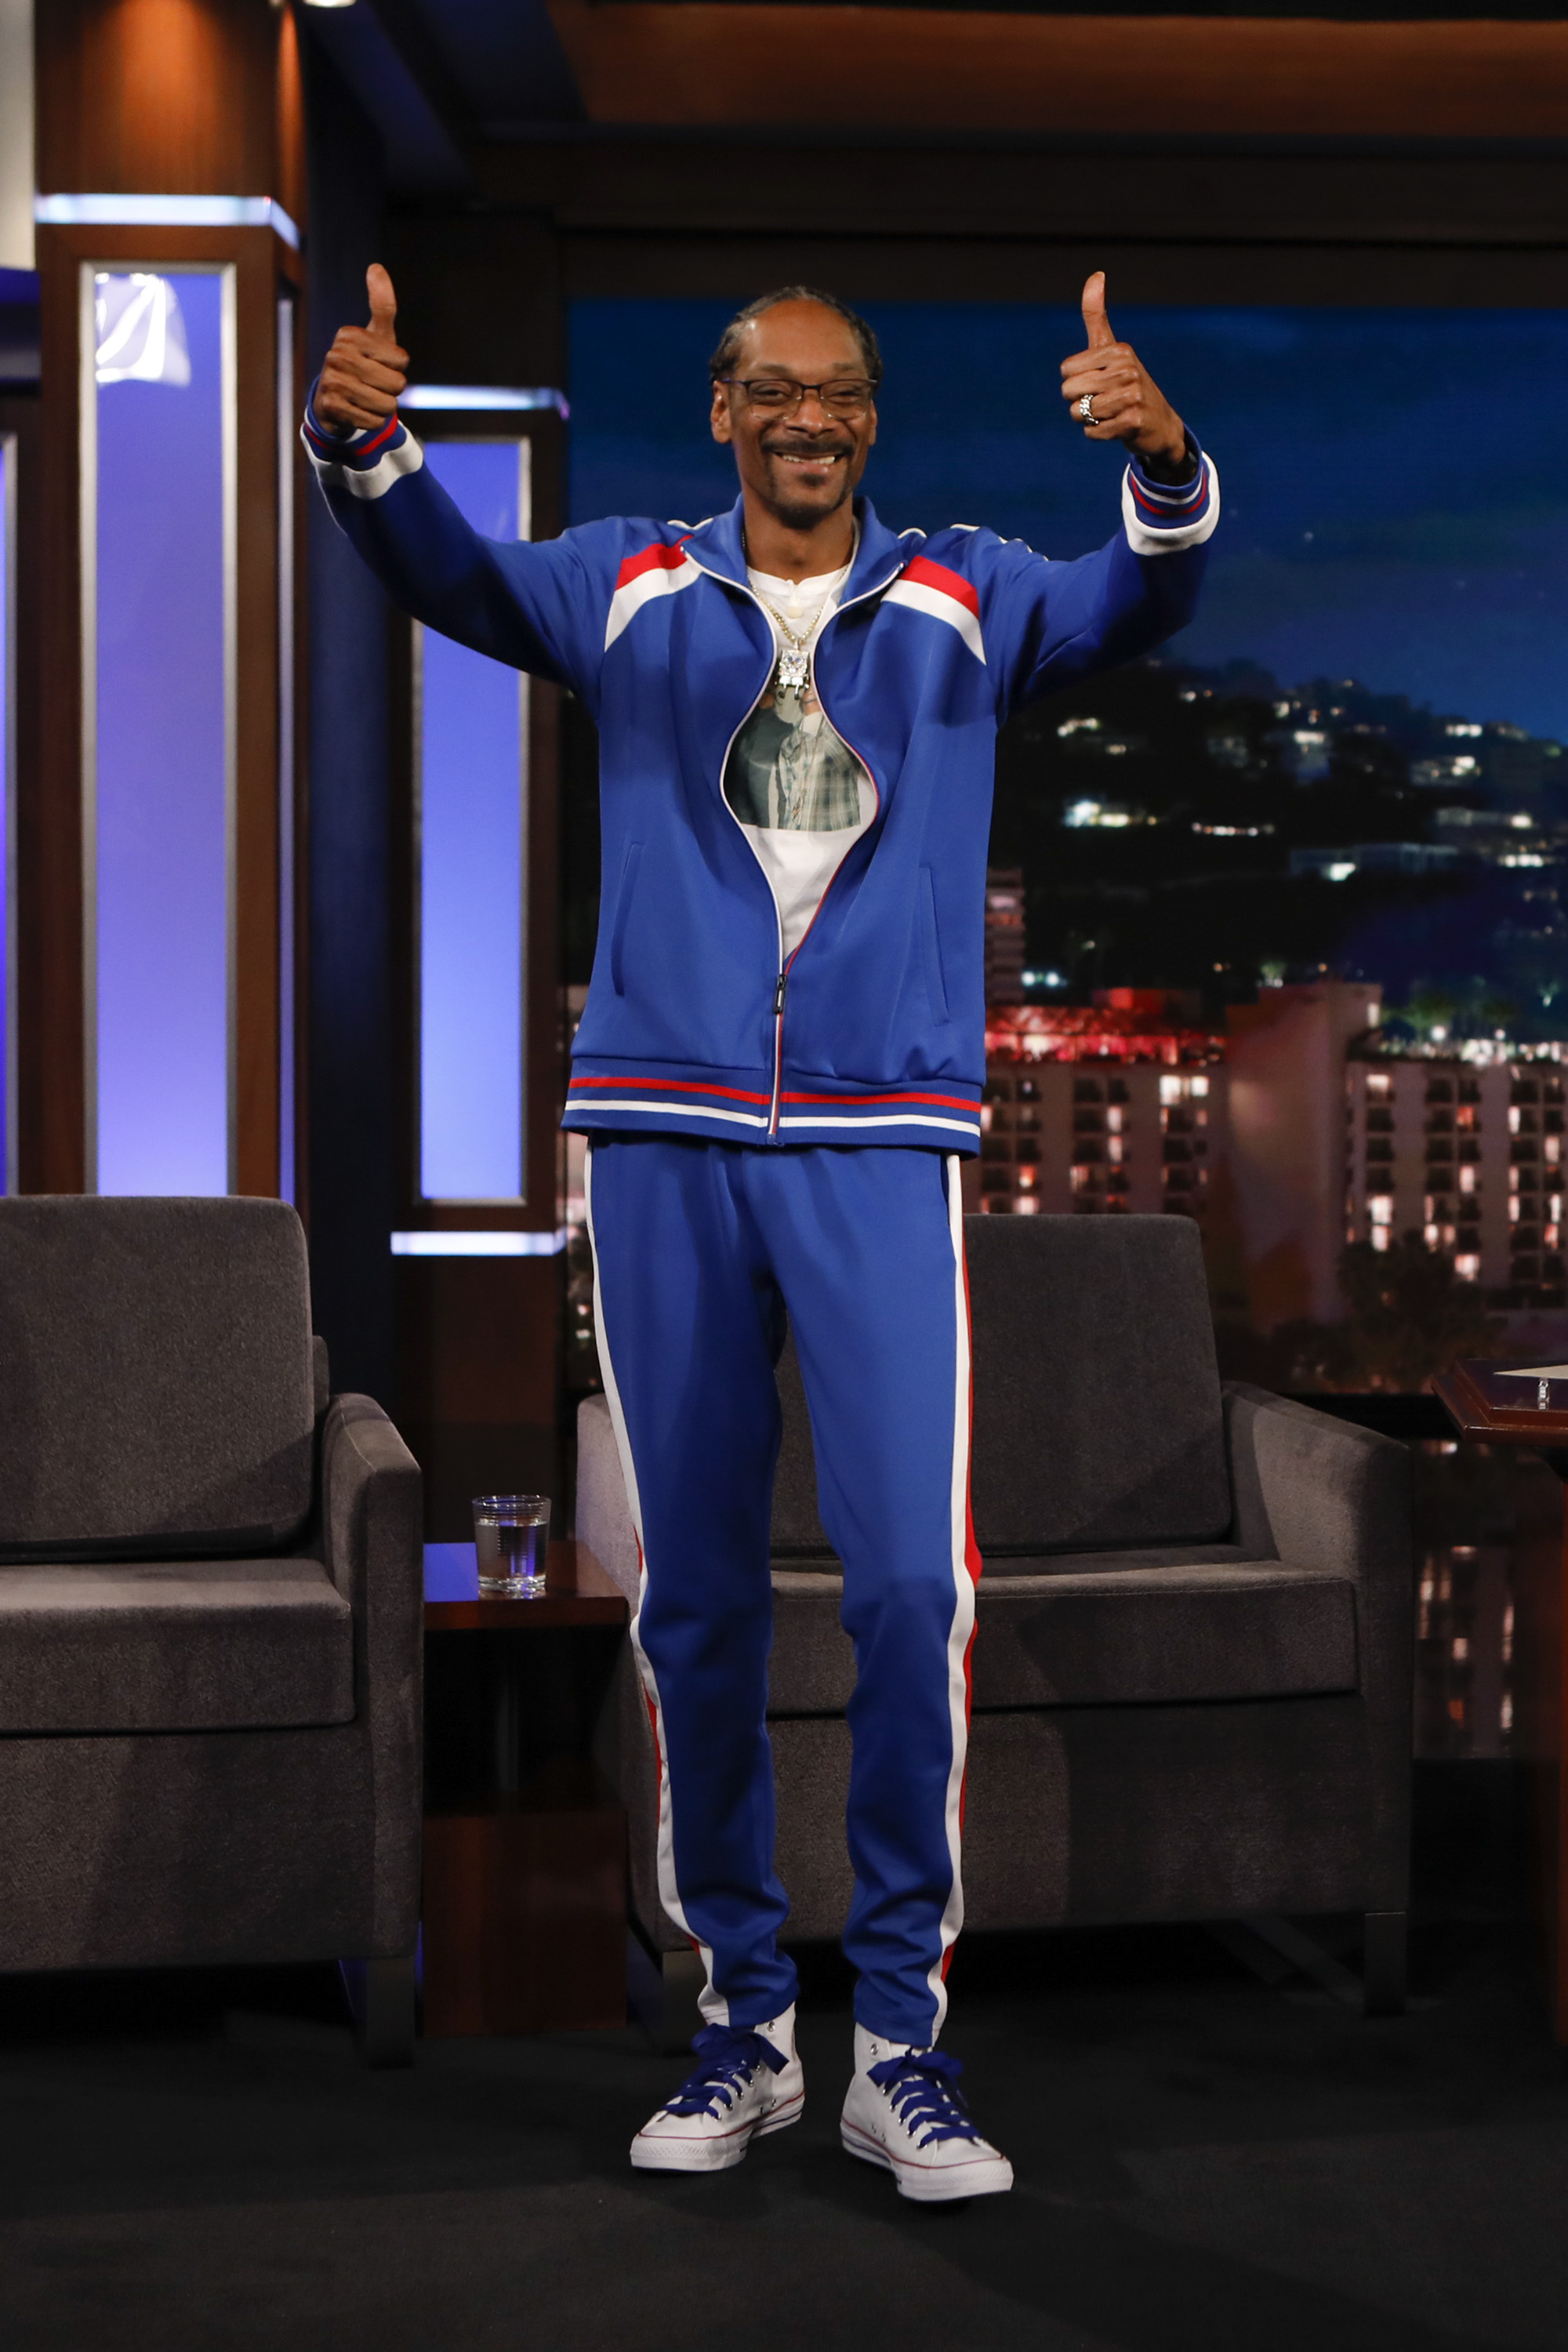 In Case You Missed It: Snoop Dogg On Jimmy Kimmel Live